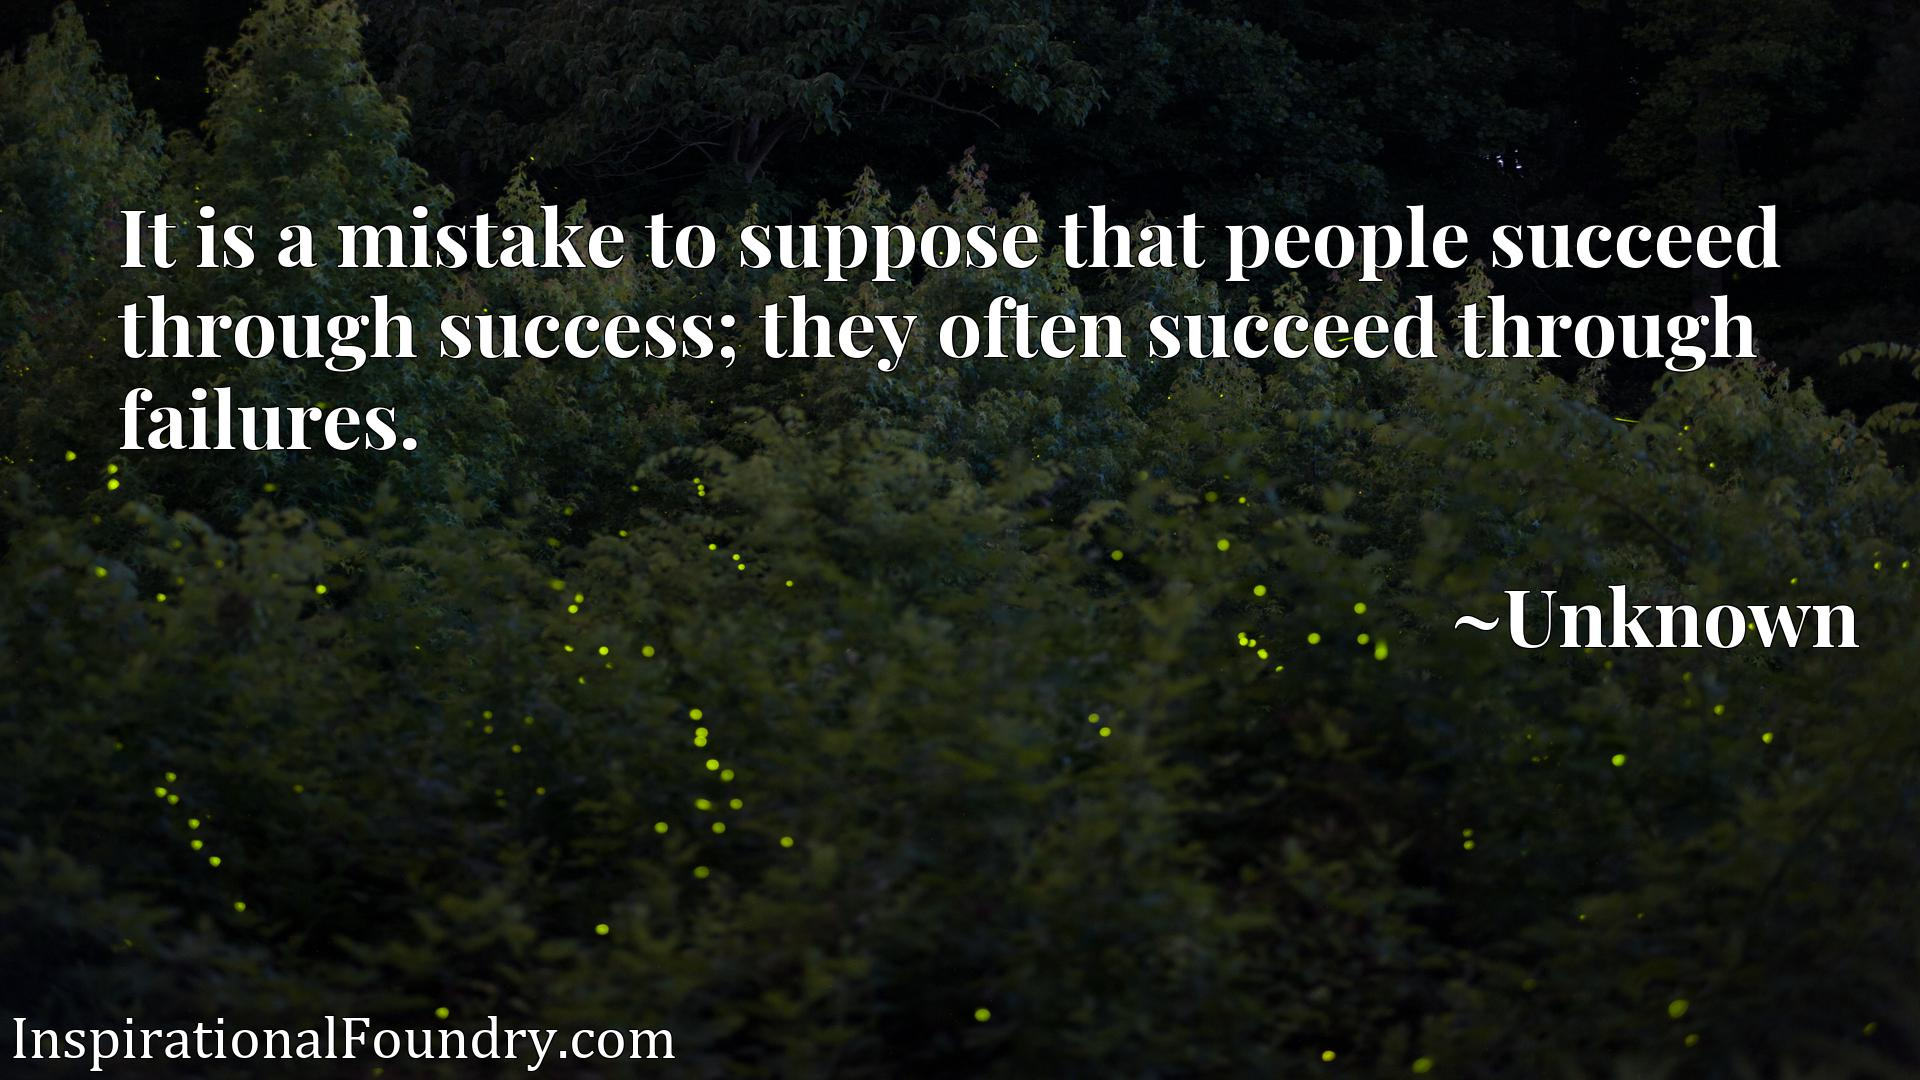 It is a mistake to suppose that people succeed through success; they often succeed through failures.